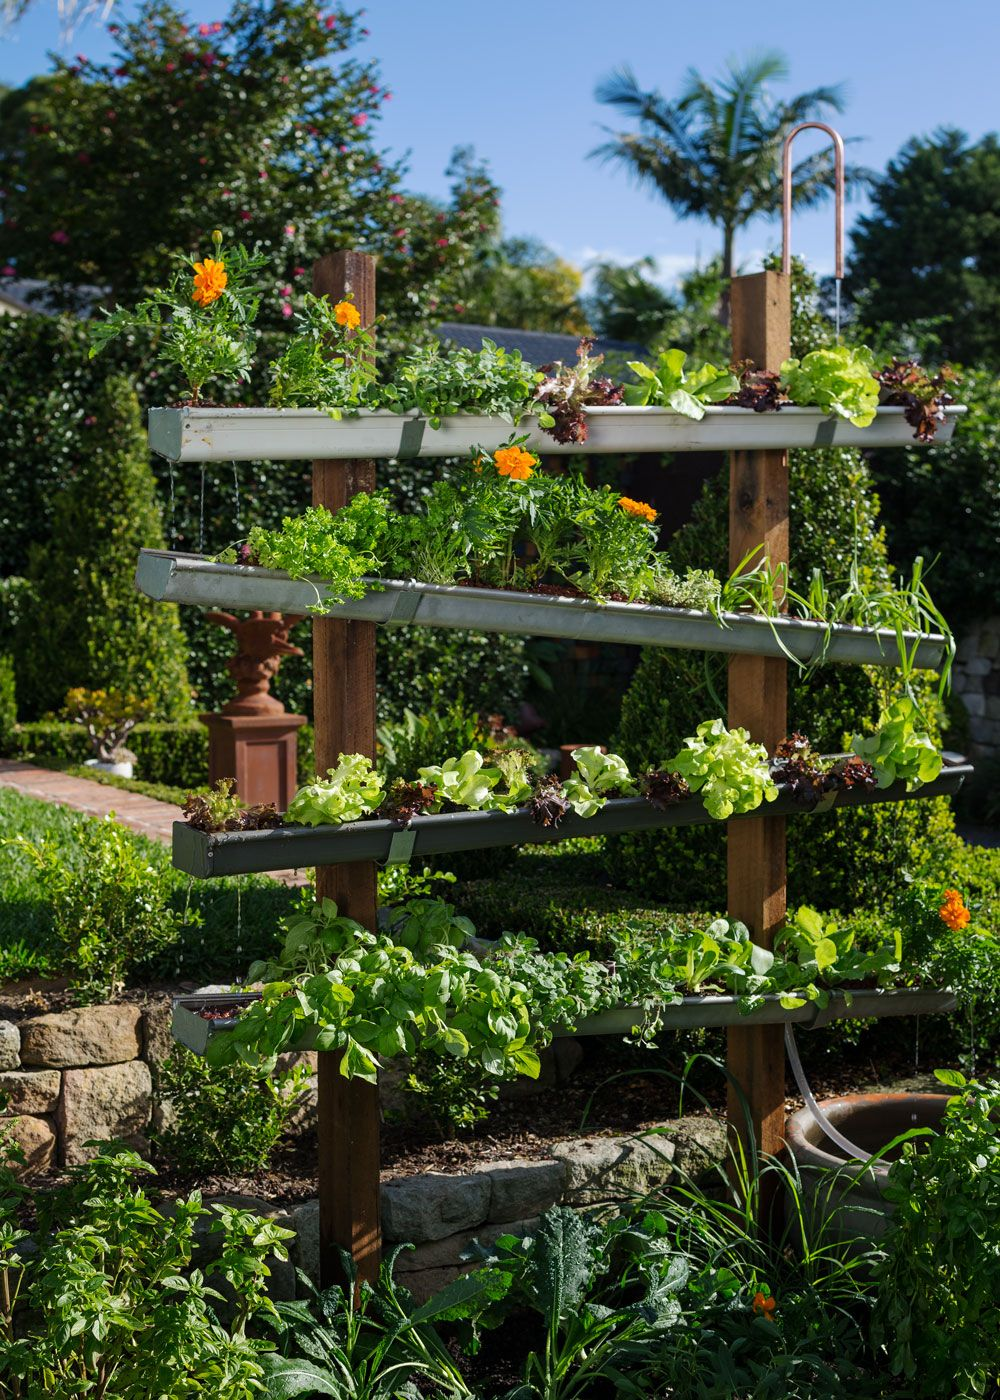 build a cleaner more sustainable vegie patch using simple